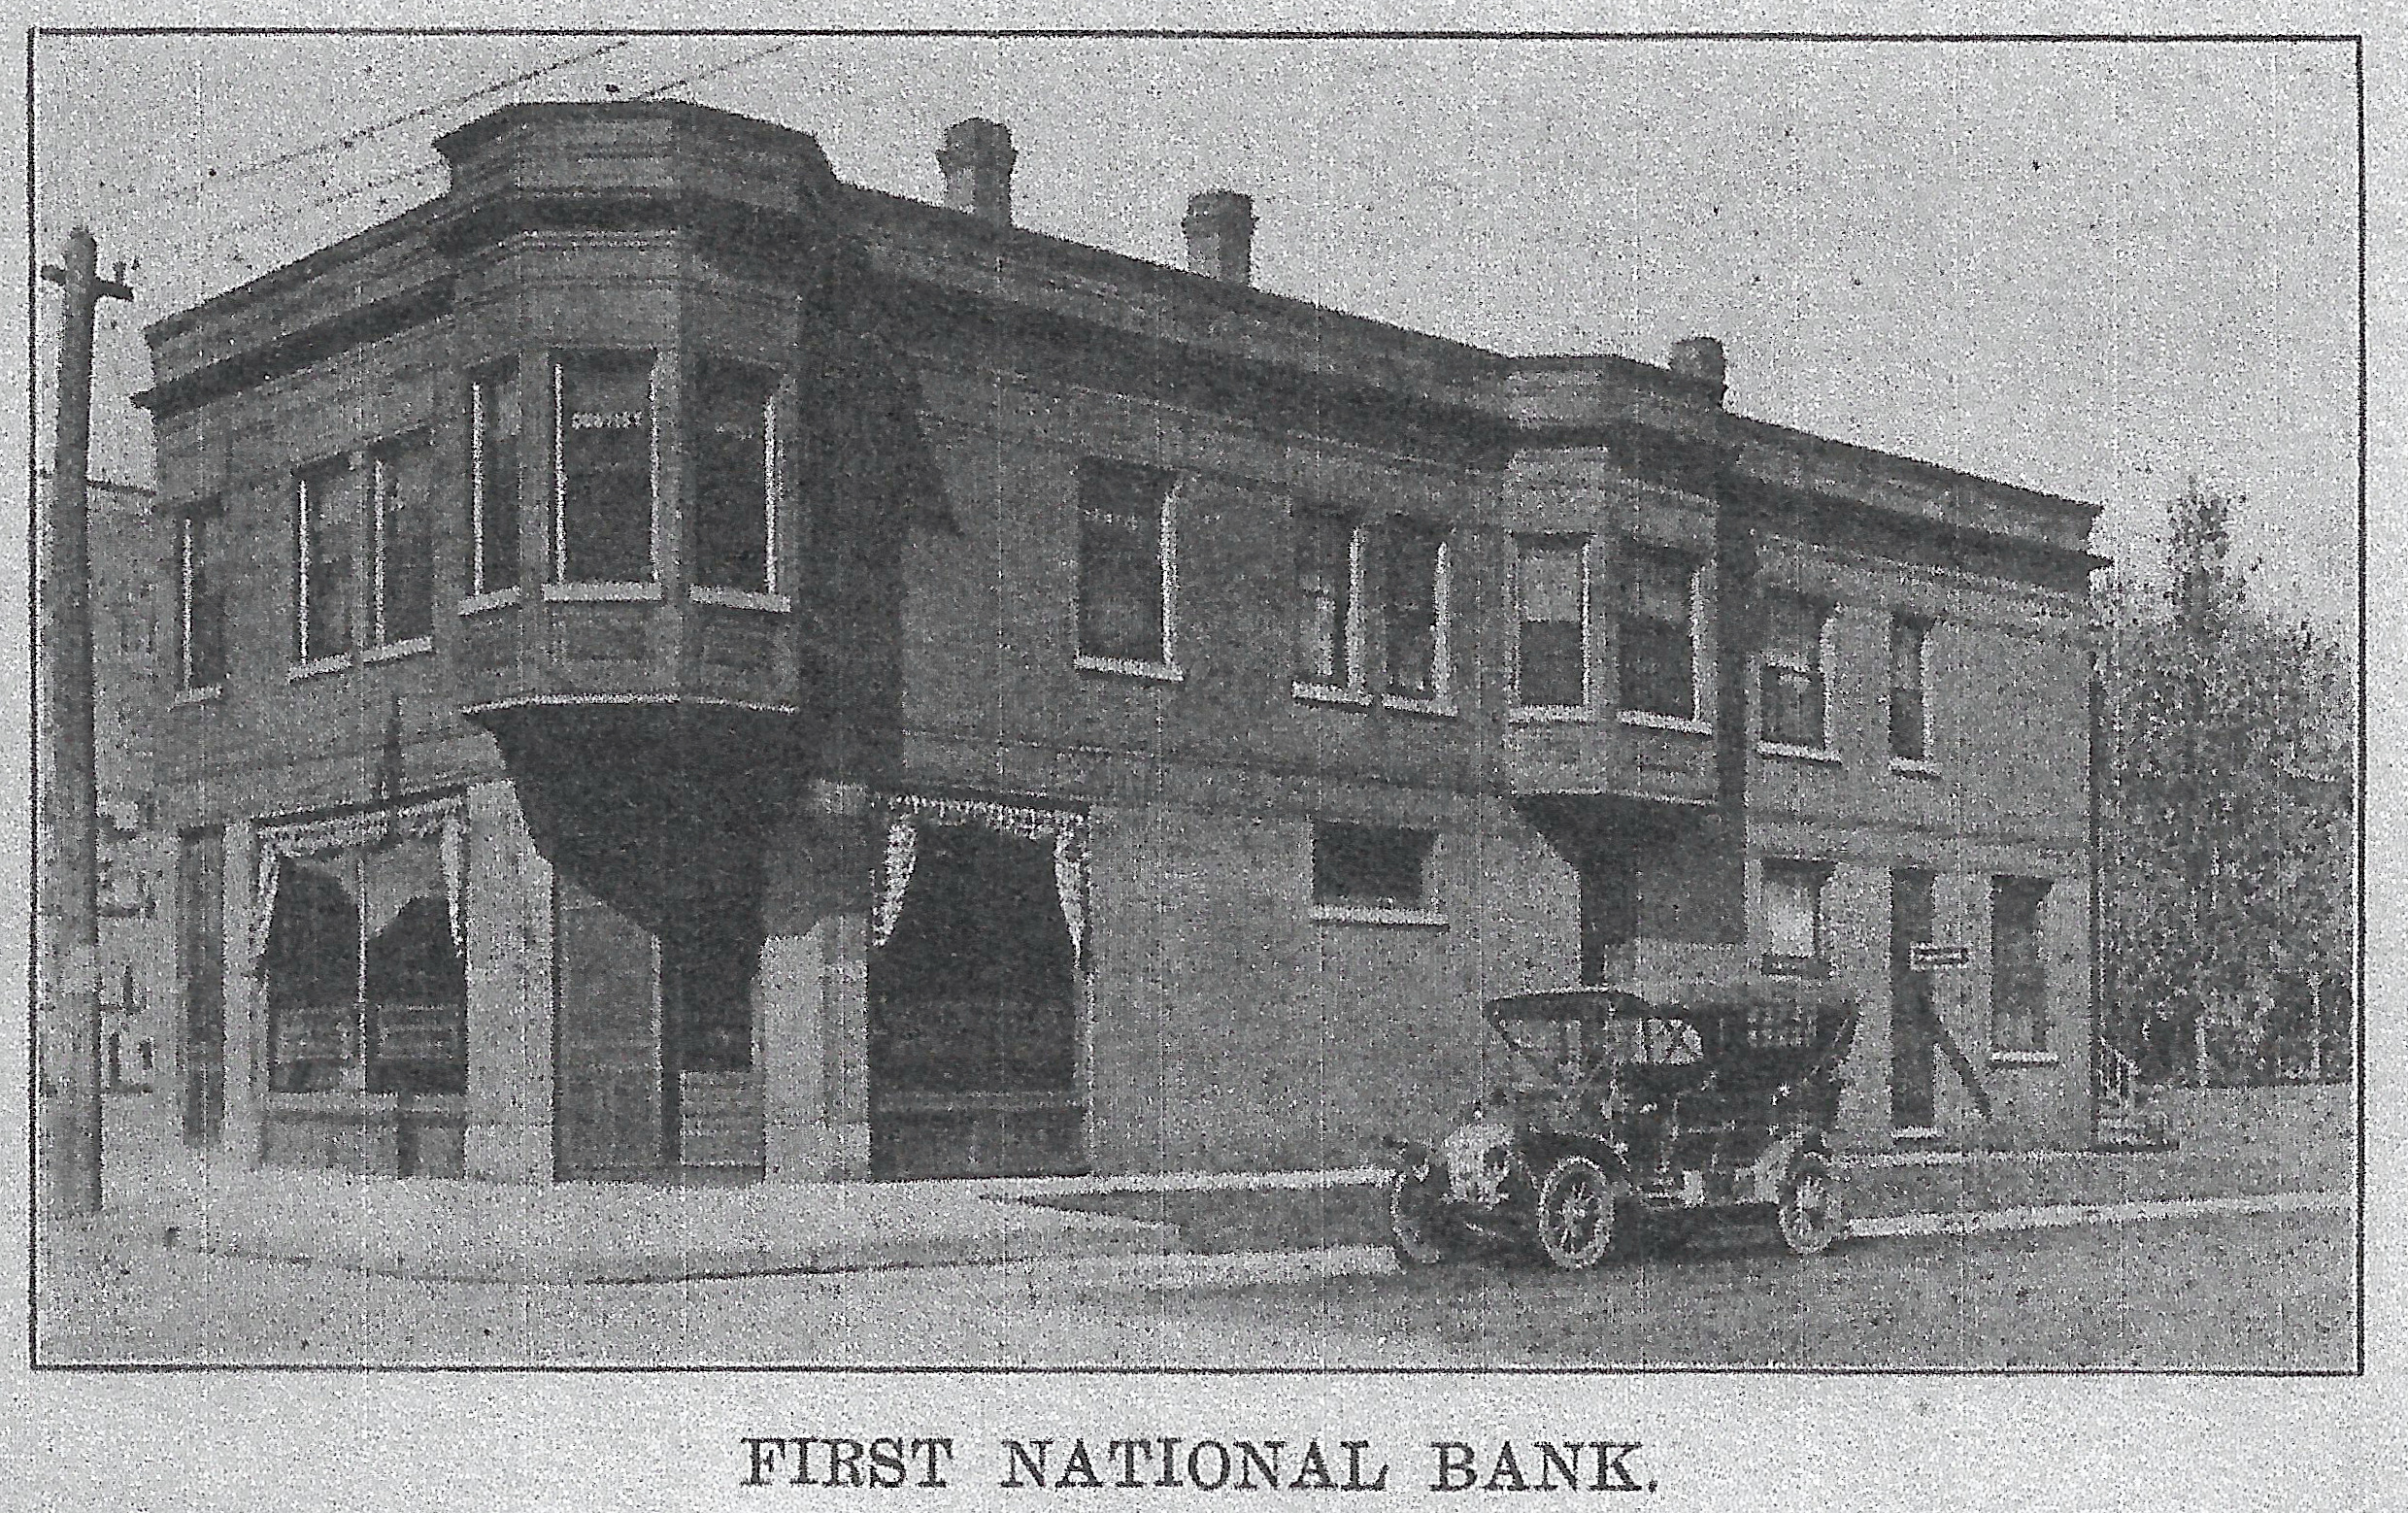 A dentist, Dr. G.S. Hilliard, built the structure which still stands on the northwest corner of 119th Street and Oliver. His offices occupied the upstairs. In the back part of the ground floor was a doctor's office, while the front part was the first home of the First National Bank of Whiting. The bank operated in this building from 1902 until its official opening in 1915 in its new building, at the northwest corner of 119th and New York.